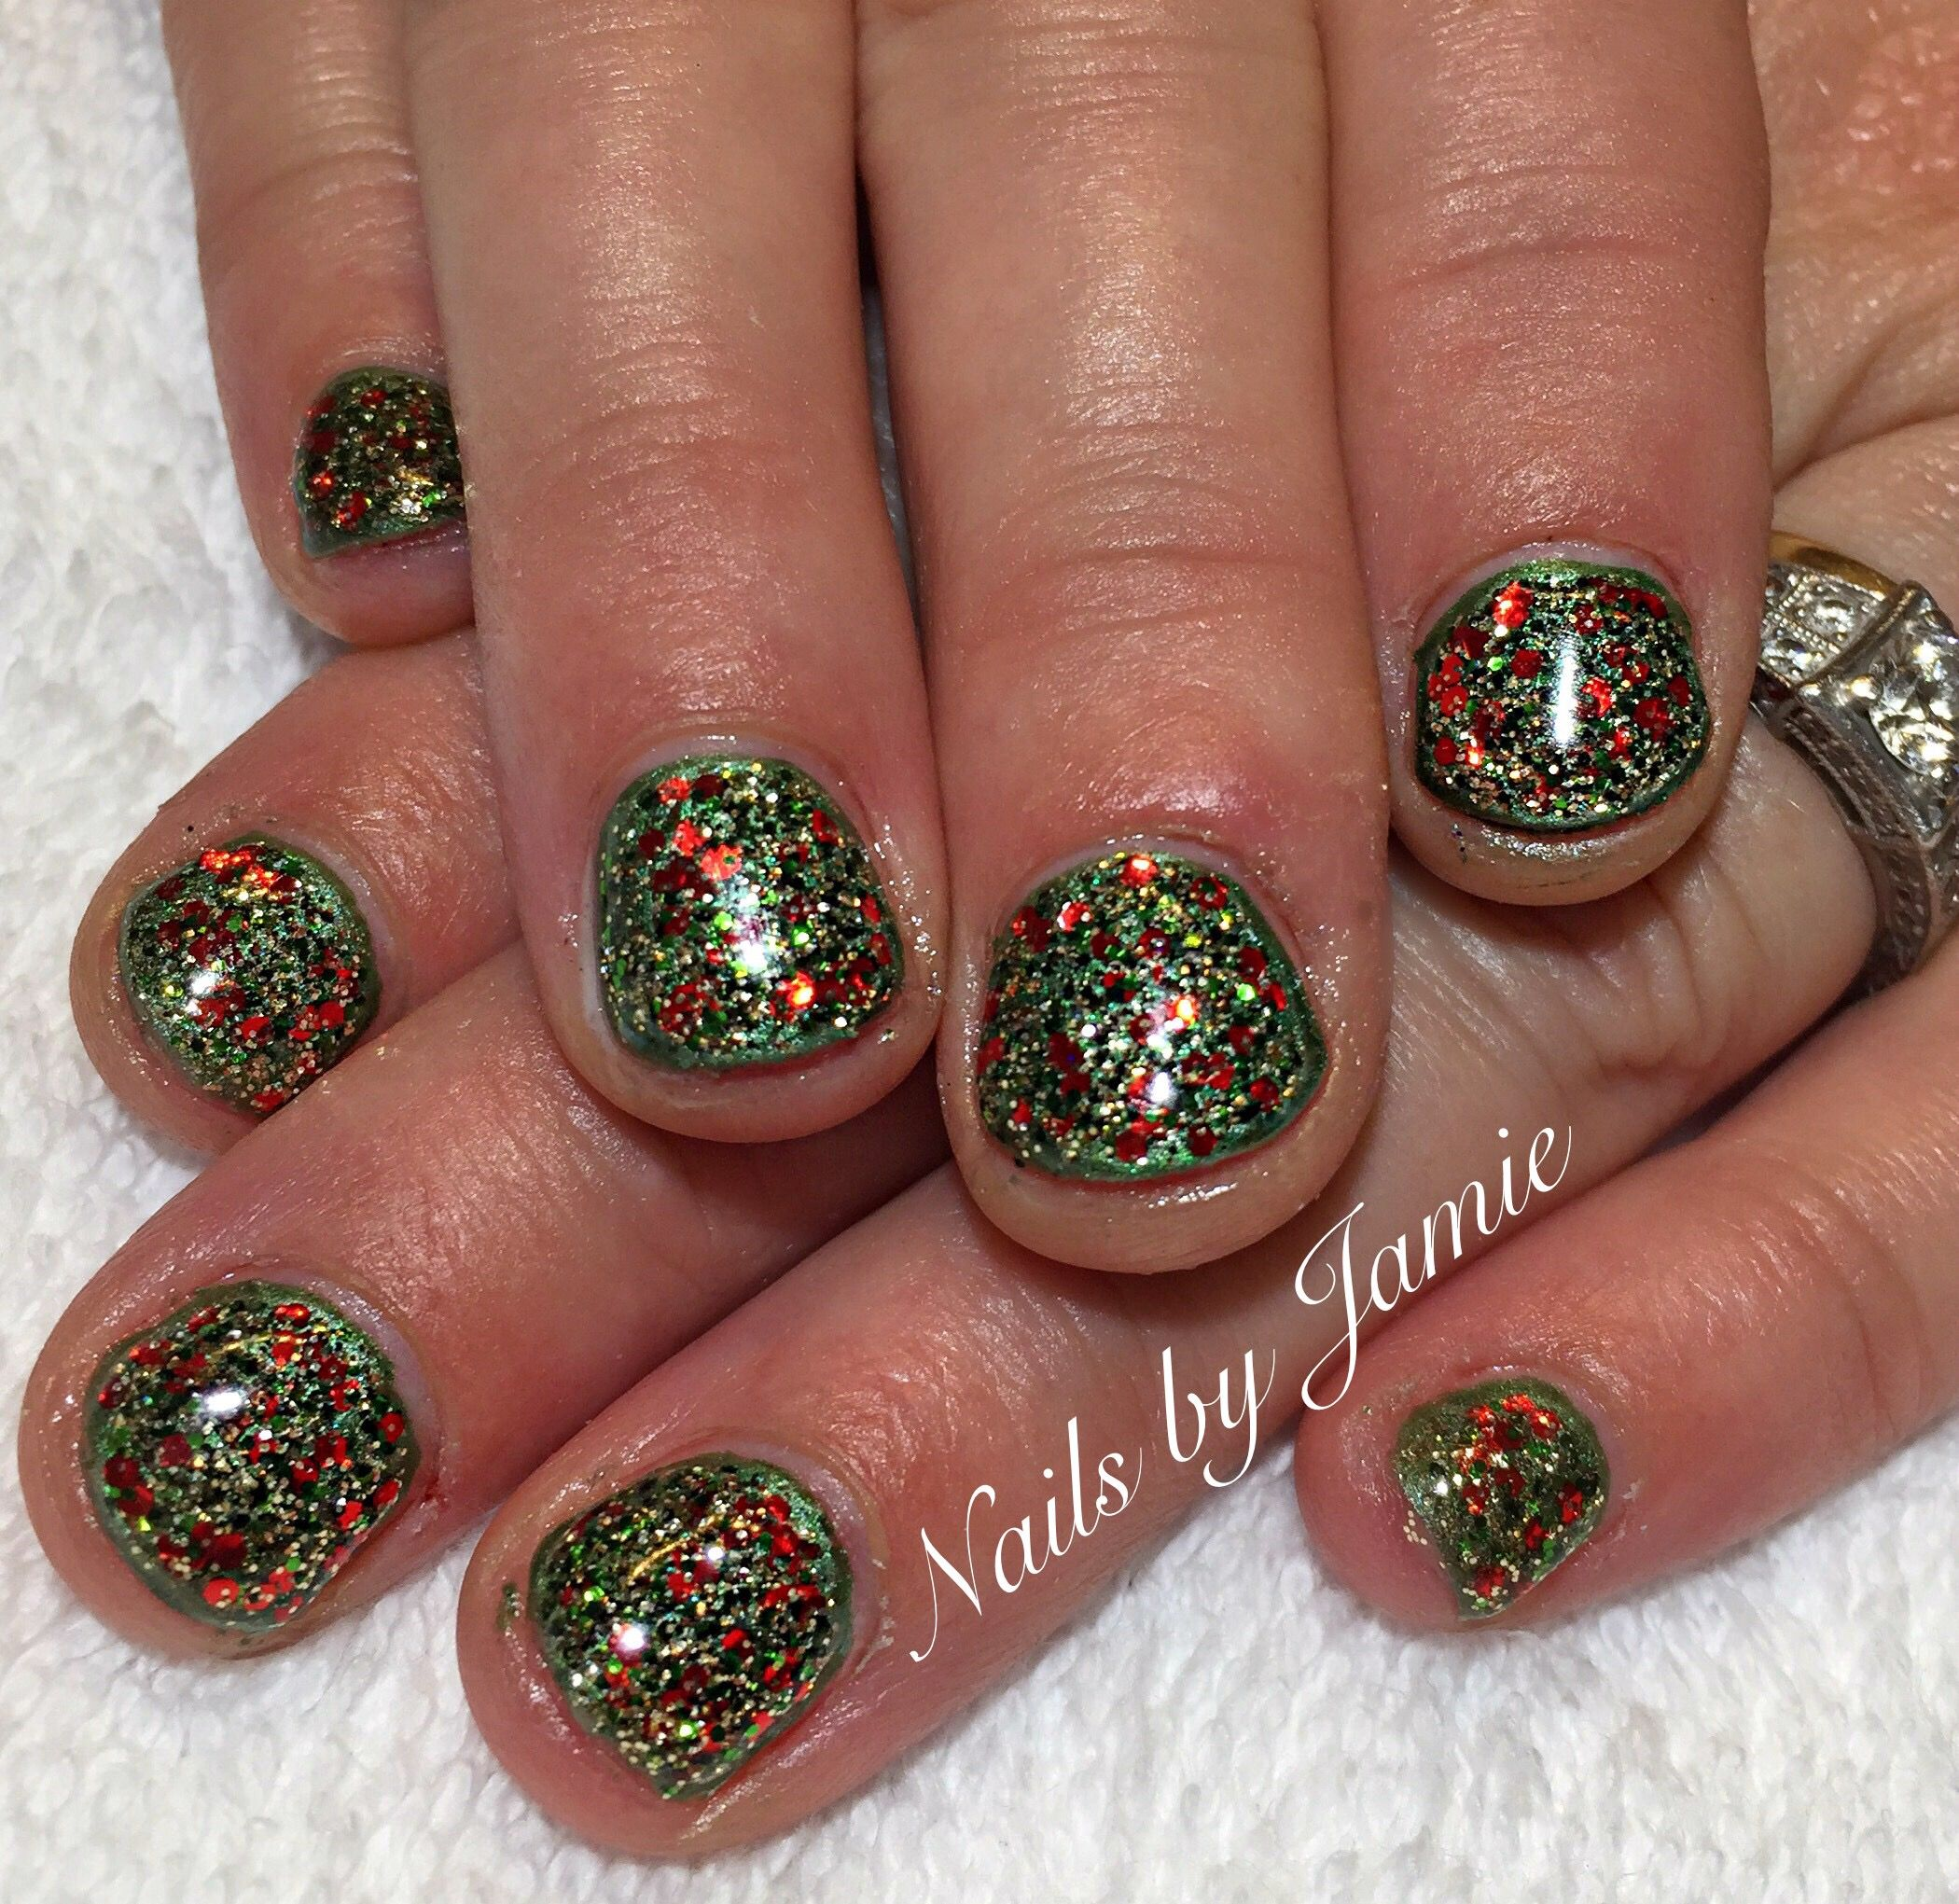 Christmas Nails by Jamie Duffield Eugene, Oregon To book an appointment call (541) 556-8337 or go to www.styleseat.com/jamieduffield